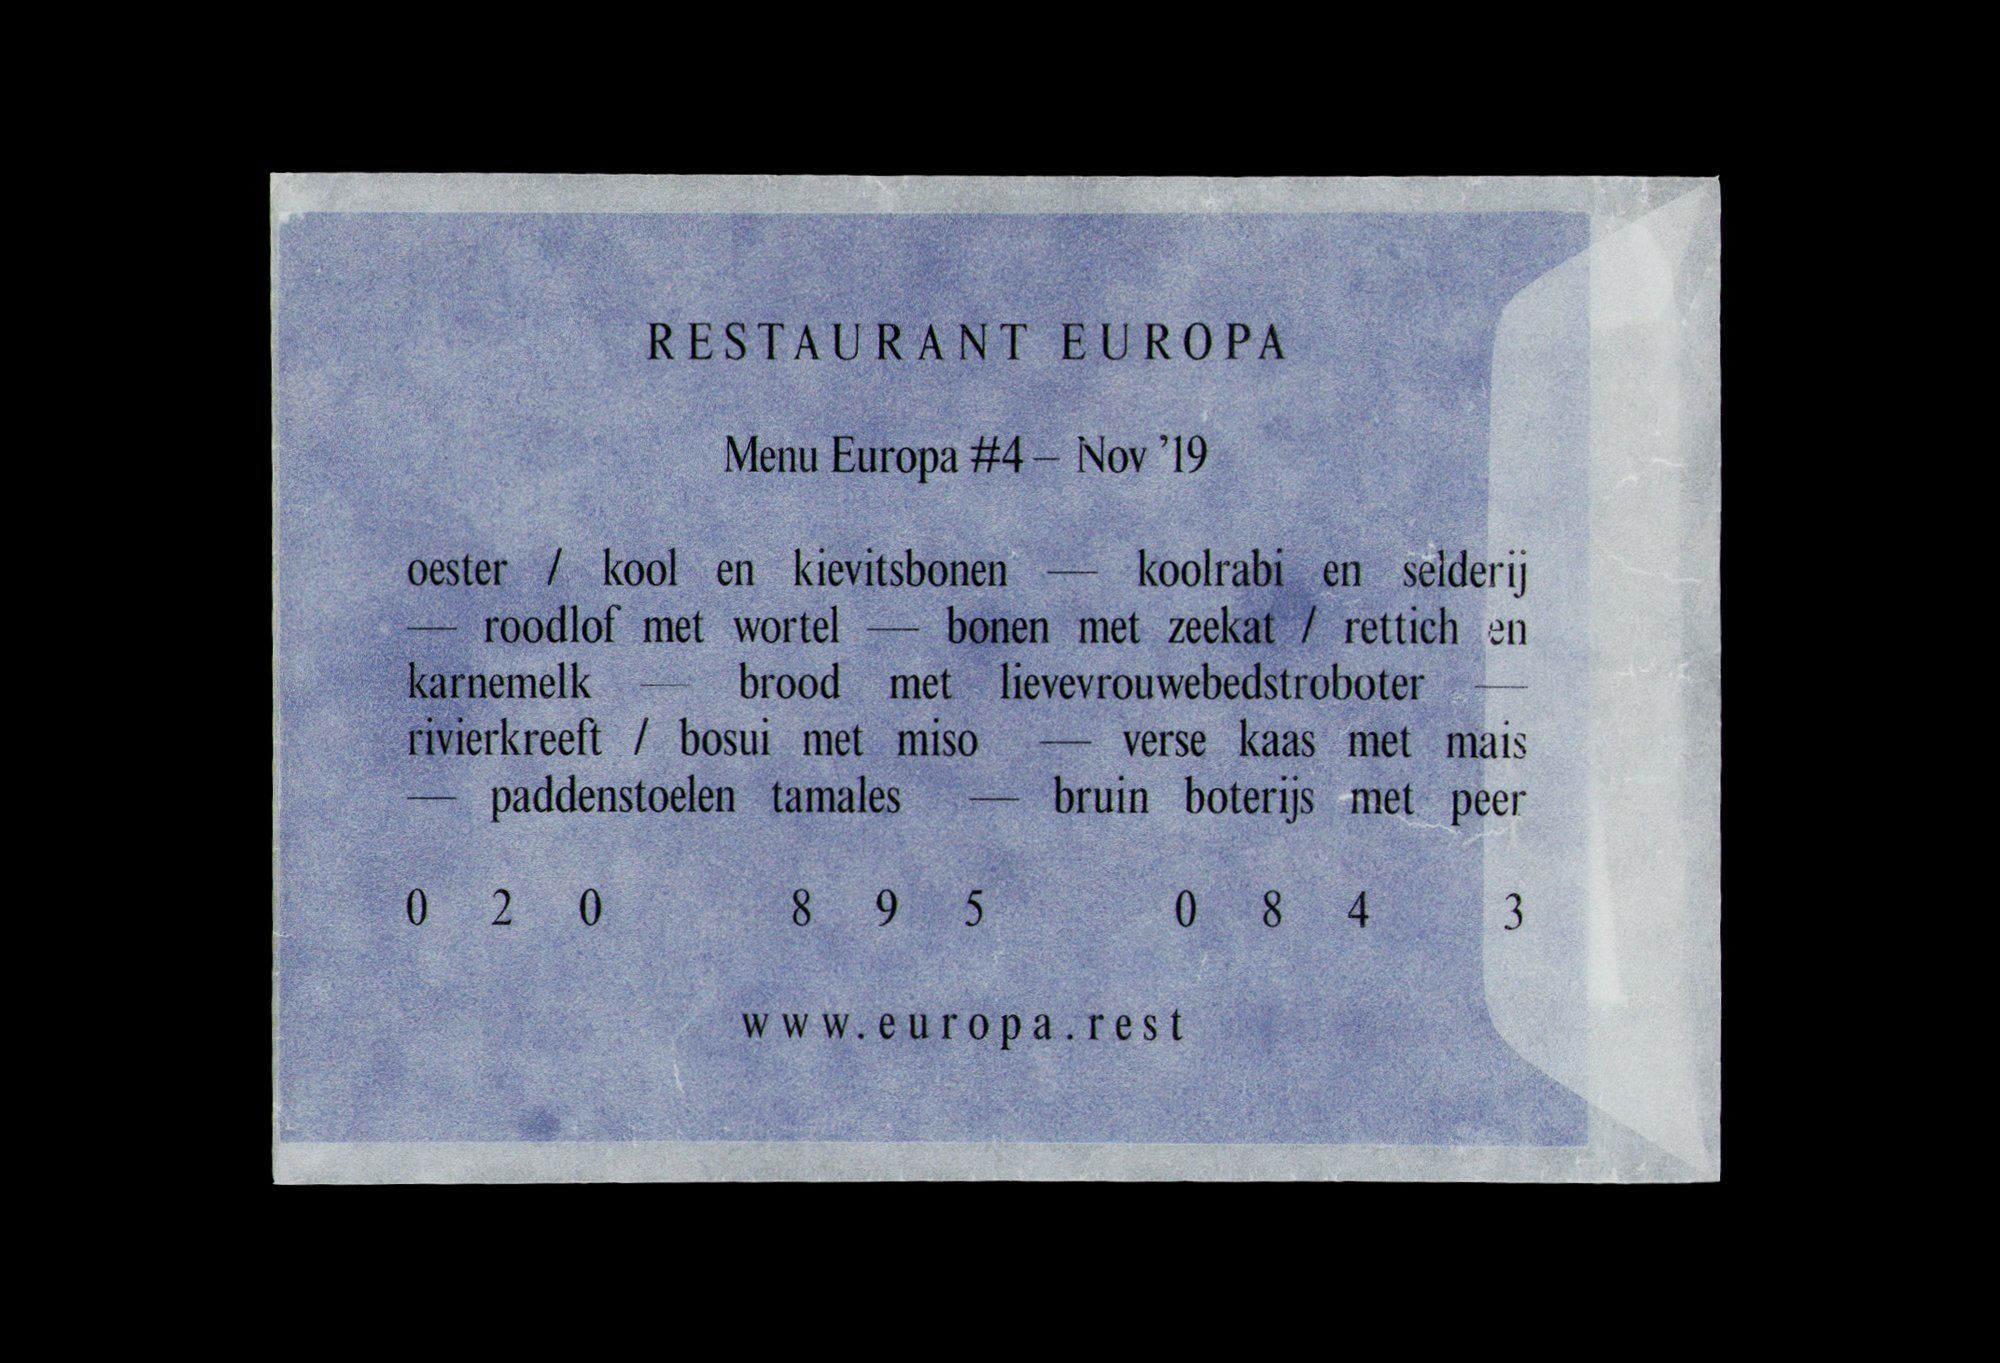 Menukaart Restaurant Europa / 2019 / ontworpen door Jan-Pieter Karper. De Monsterkamer interview.